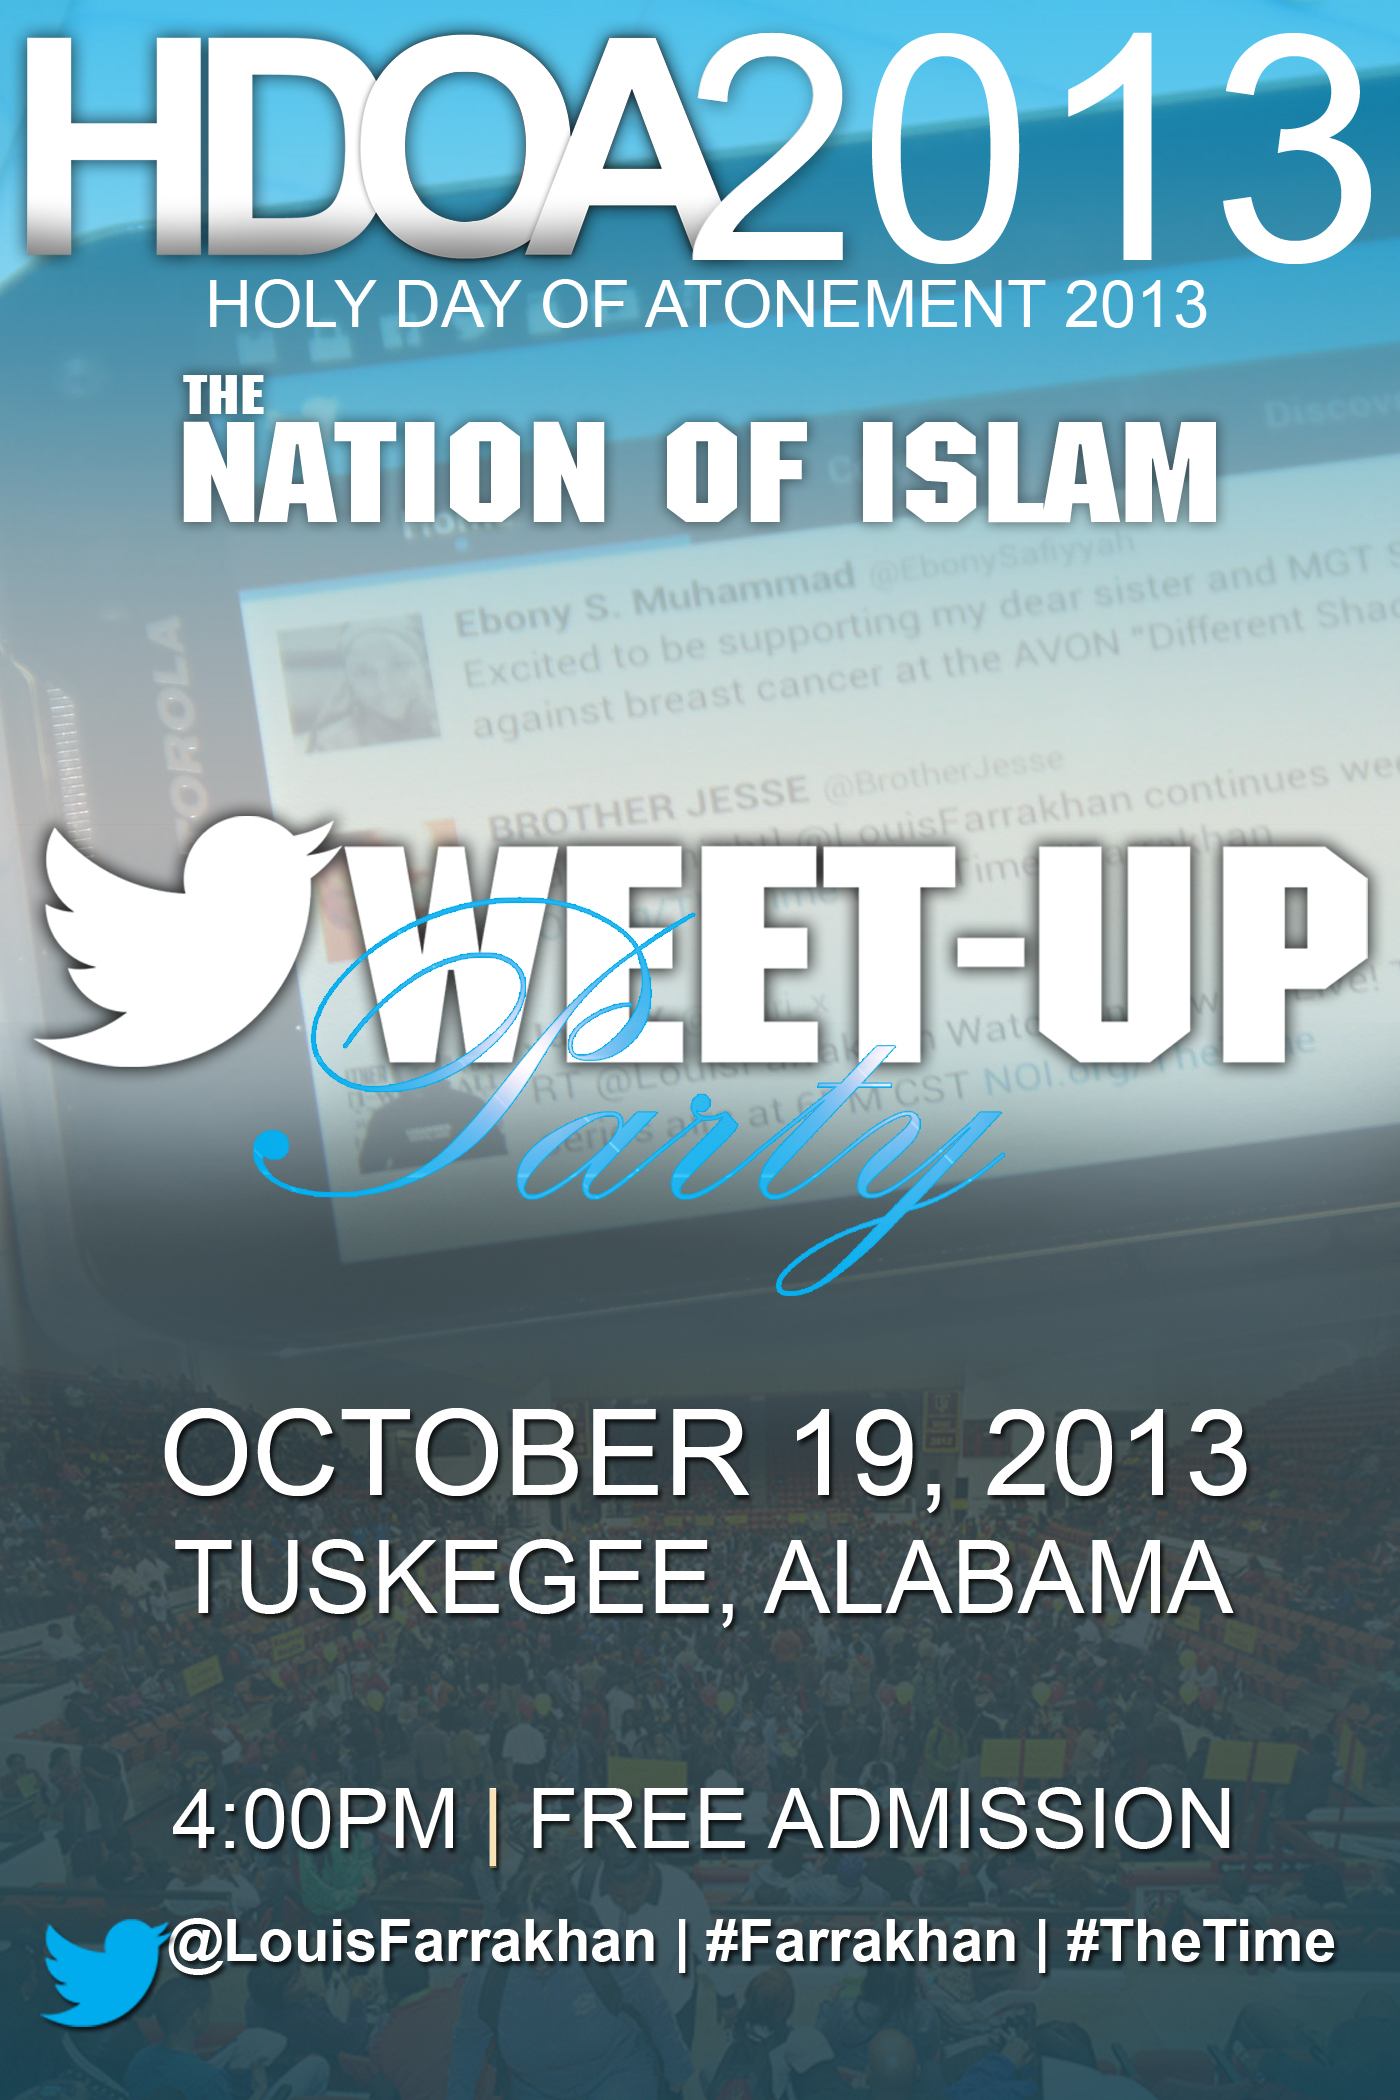 Historic HDOA 2013 Tweet-Up Taking Place in Tuskegee!